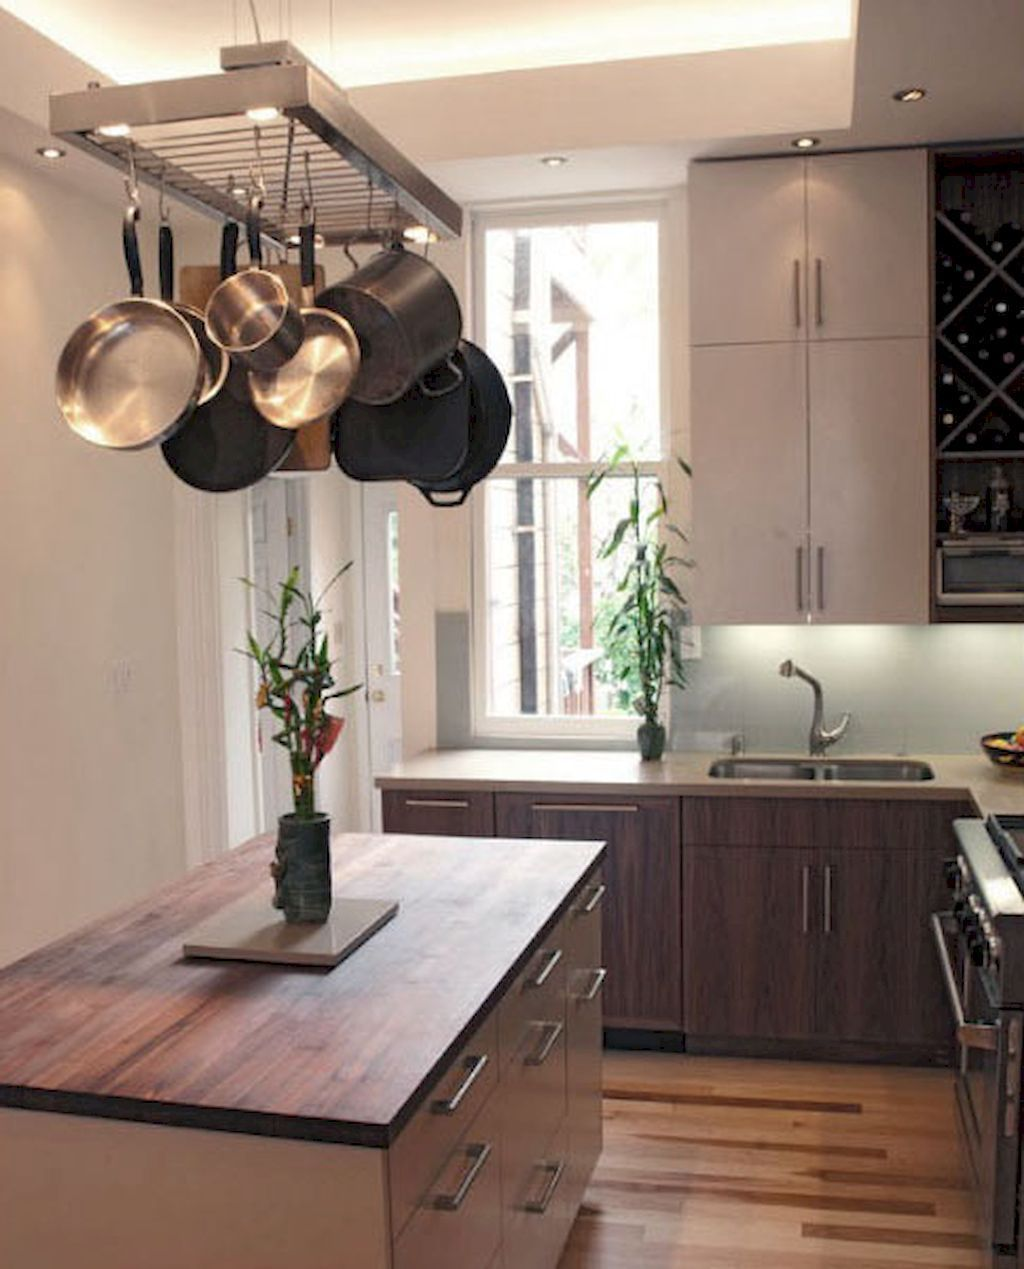 Incredible Kitchen Remodeling Ideas: 80 Incredible Hanging Rack Kitchen Decor Ideas (25